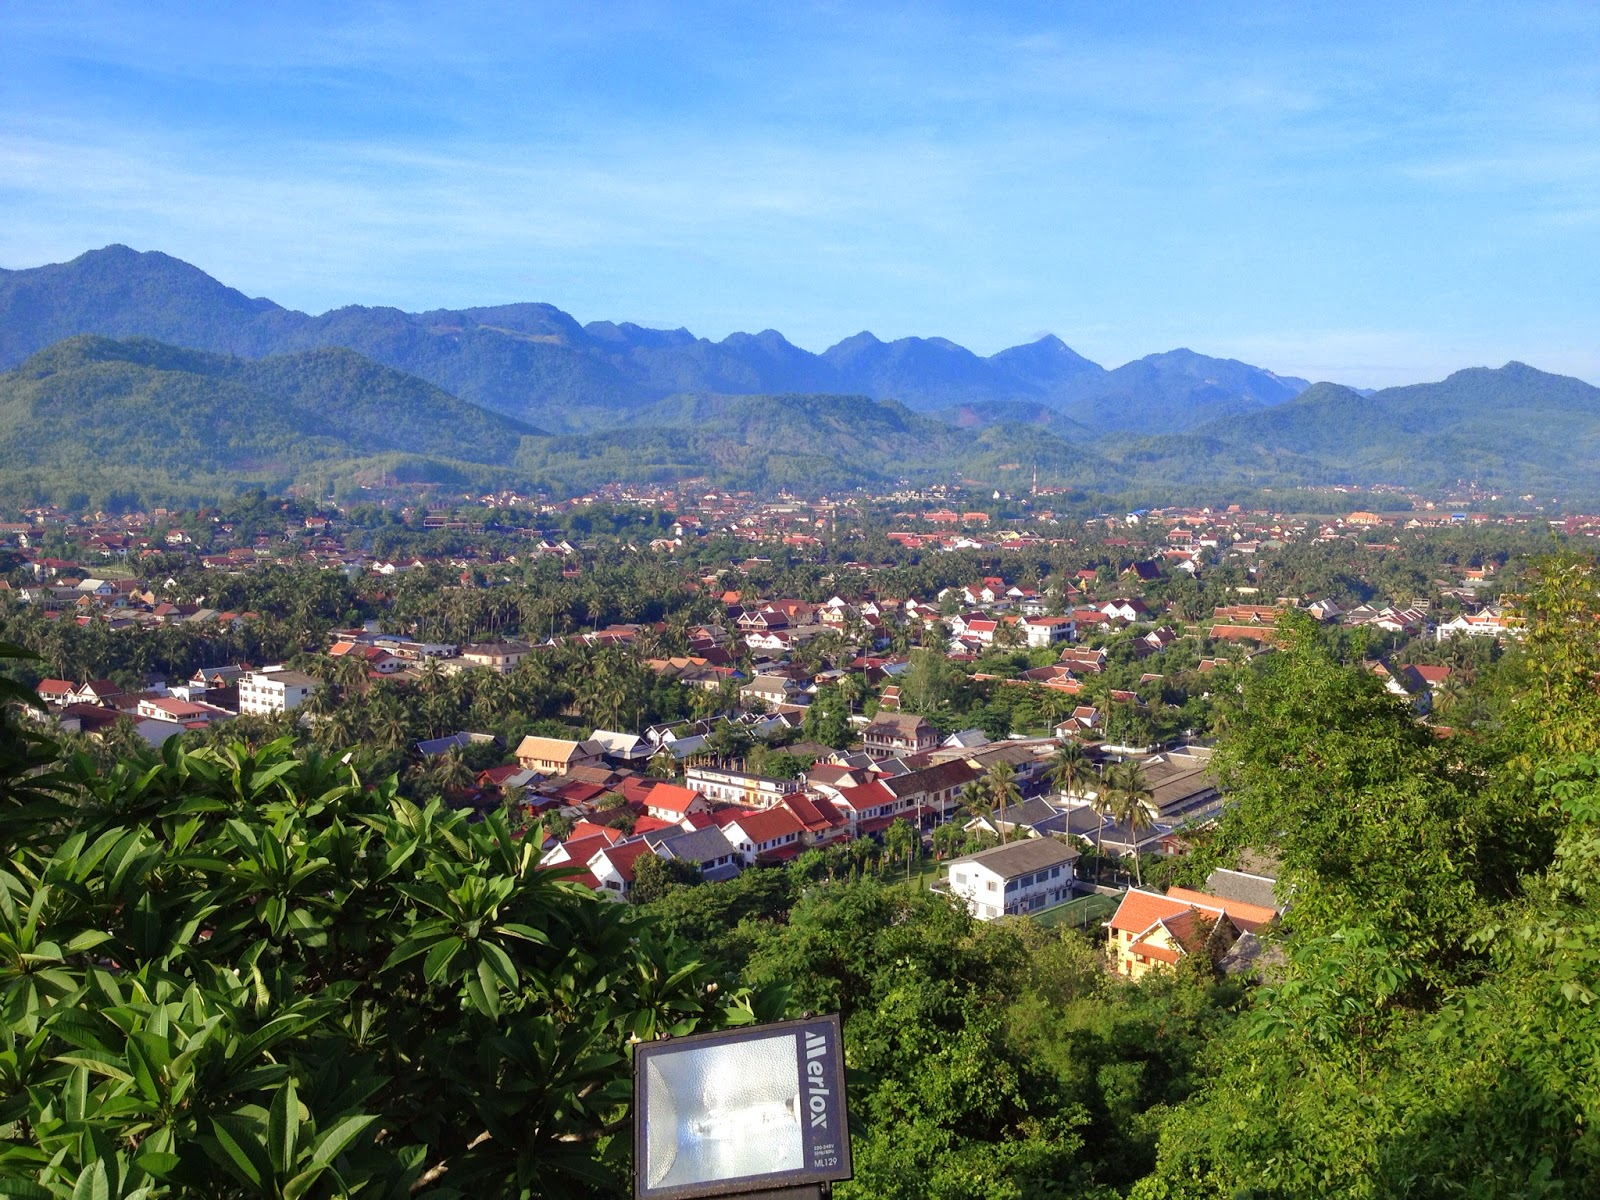 Luang Prabang - 360 degree view from the top of Phousi Hill